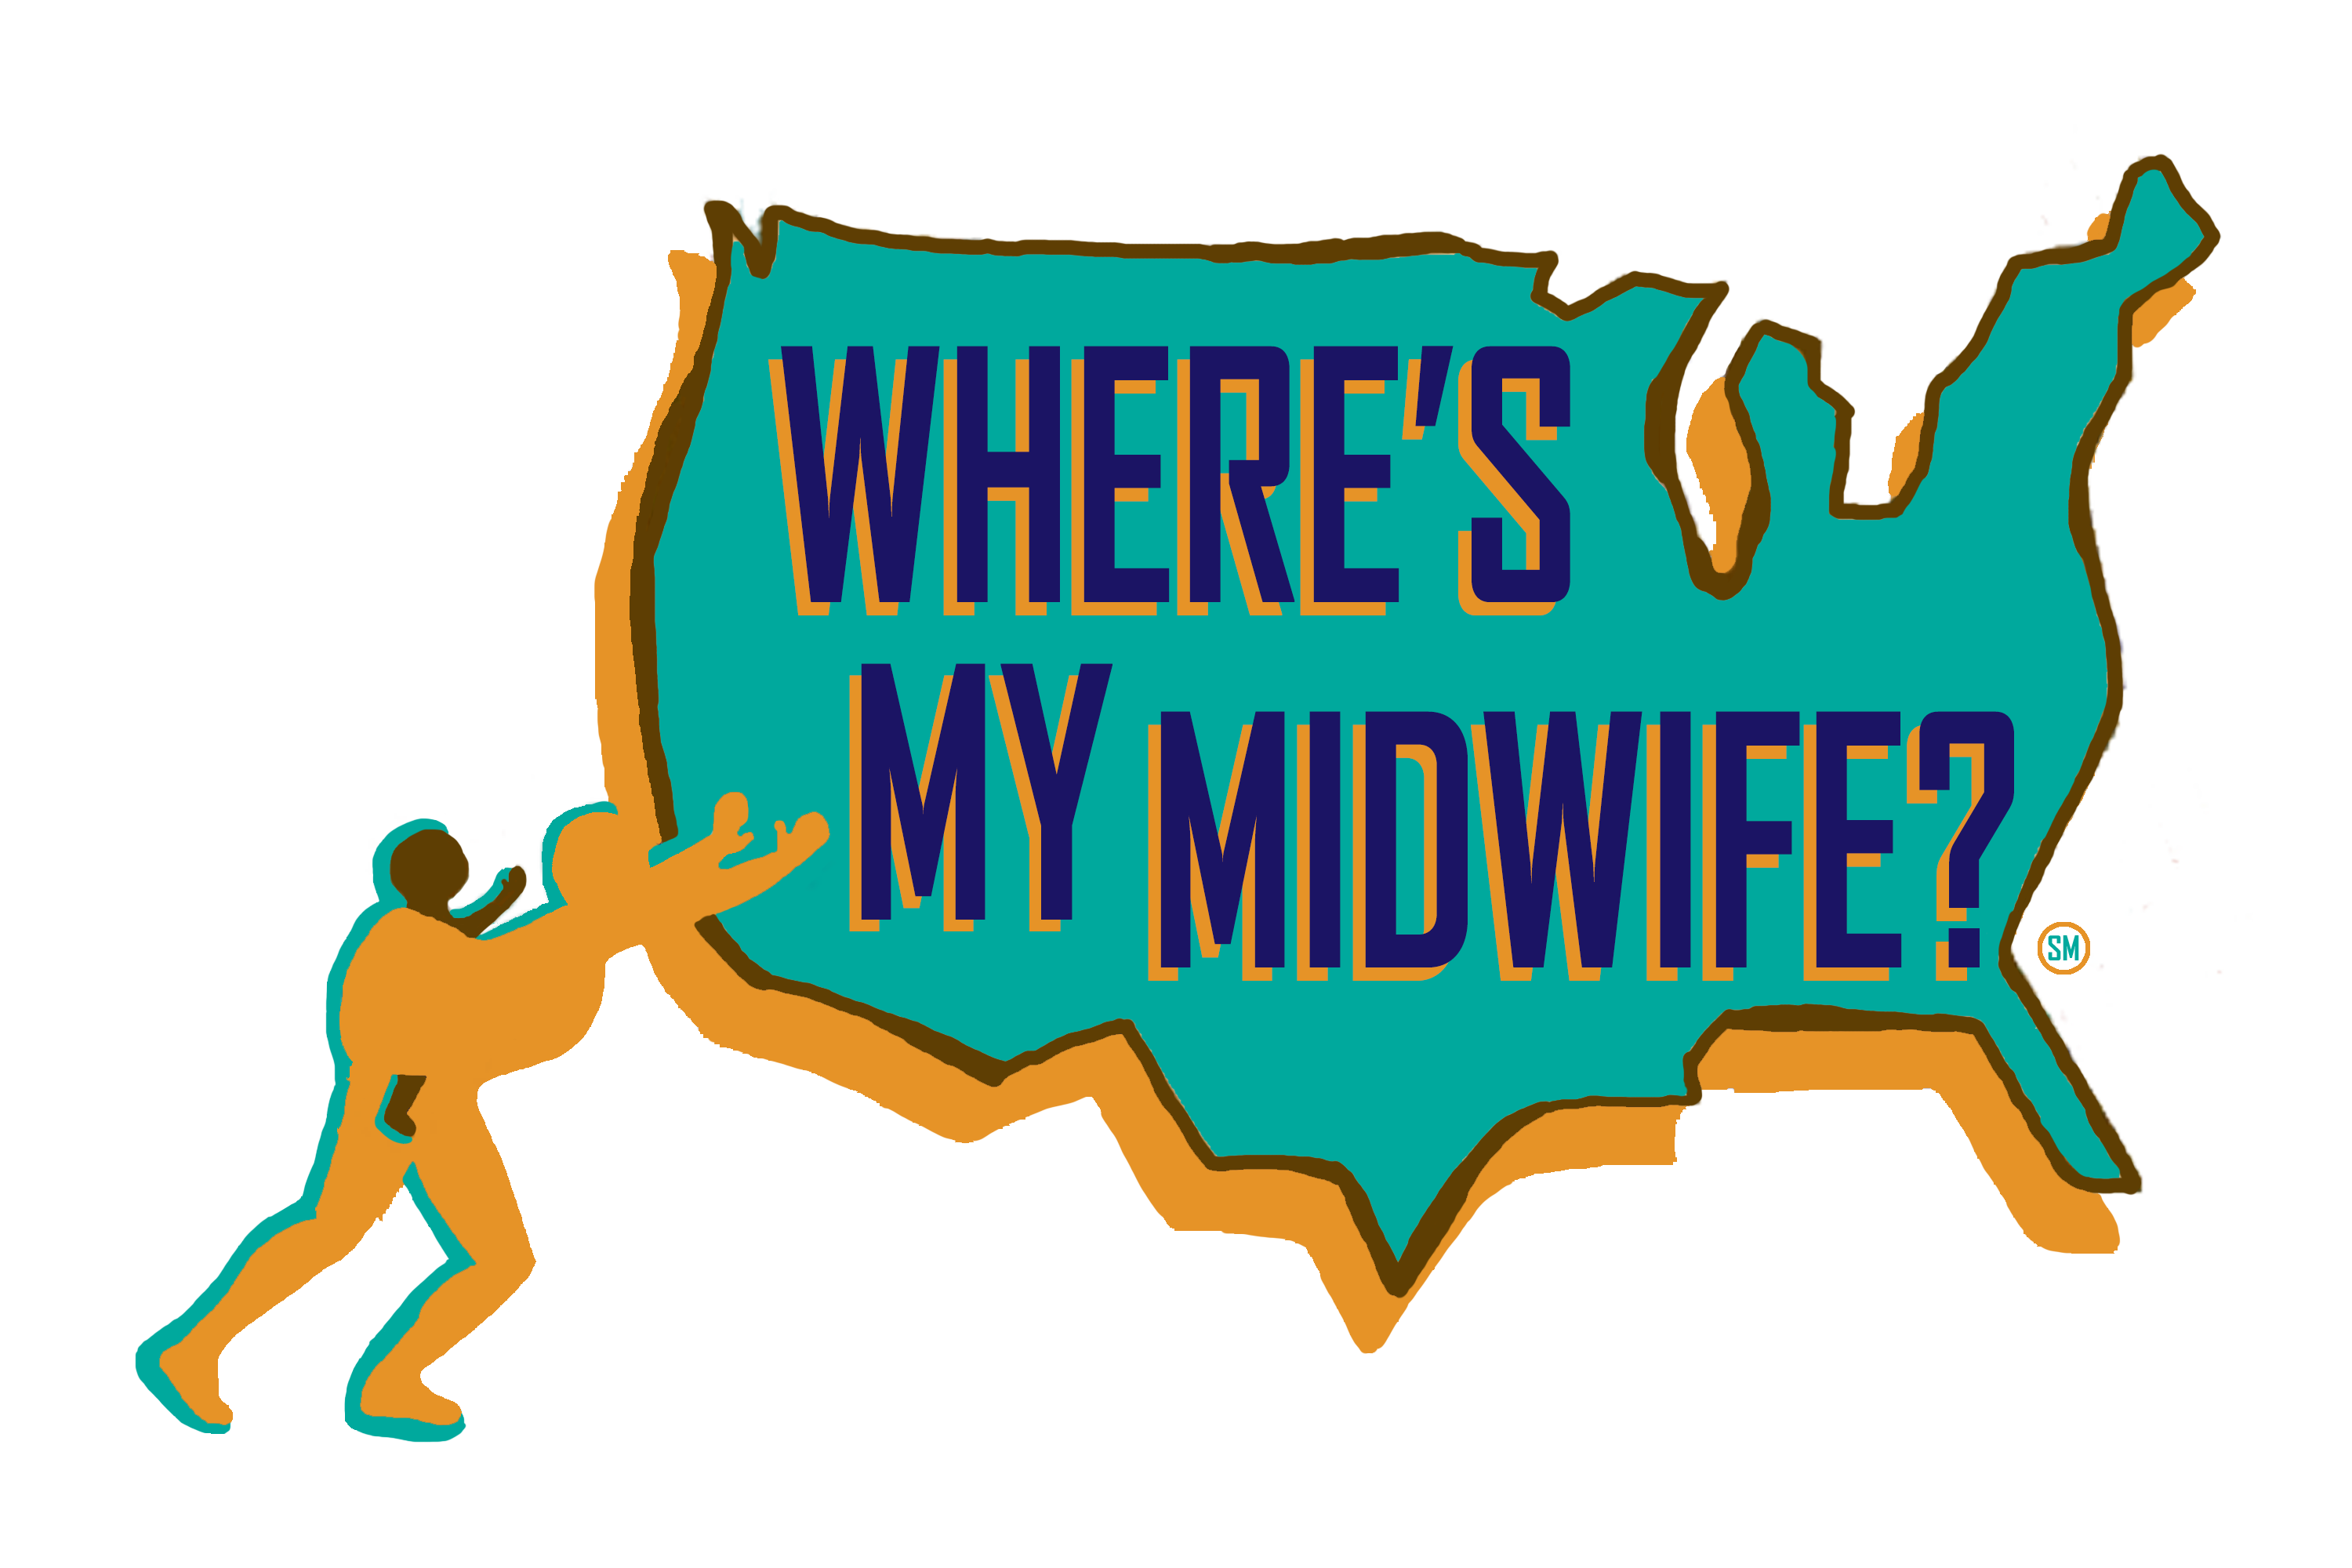 Where's_My_Midwife_Logo.png